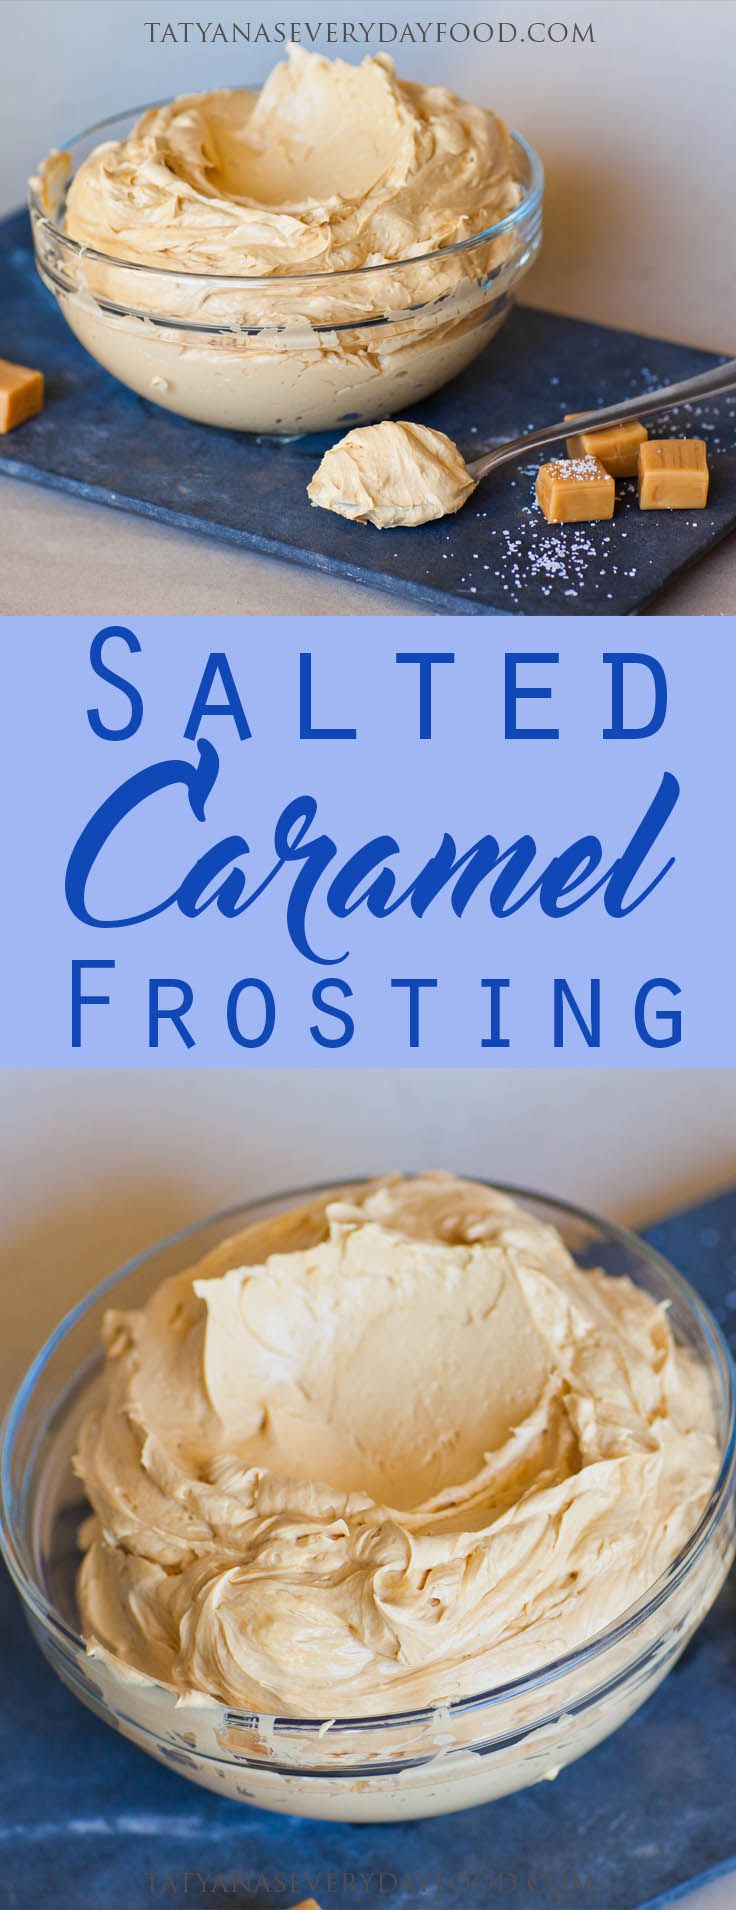 Salted Caramel Frosting – perfectly balanced buttercream made with sweet dulce de leche caramel! This is one of my all-time favorite recipes and it's perfect for frosting cakes and cupcakes. Use this frosting for chocolate, coffee or vanilla-flavored cakes. I use this for frosting an 8-inch cake or 24 cupcakes. Watch my video recipe for step-by-step […]